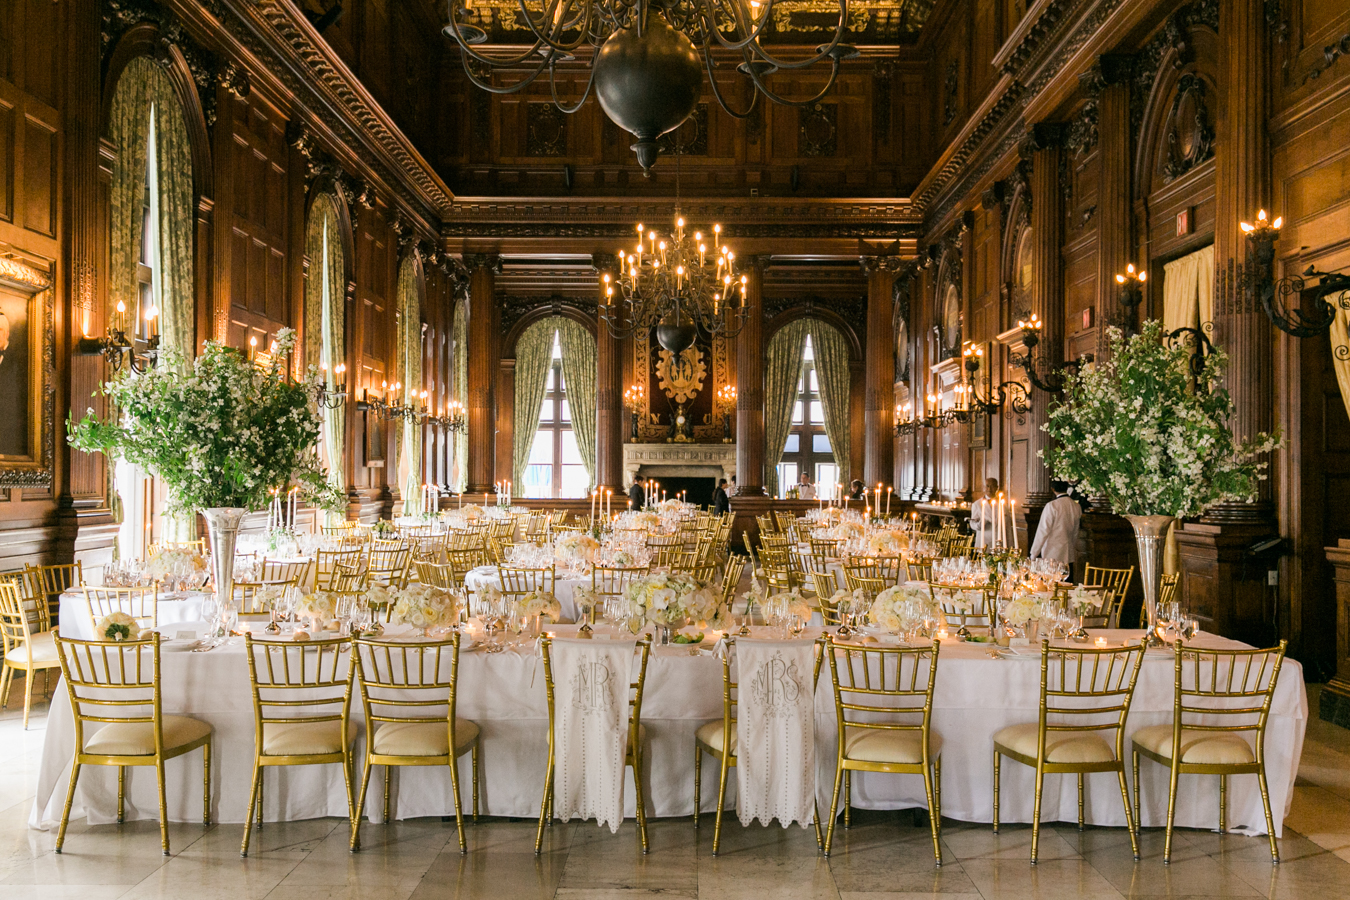 Elegant gold and white wedding elizabeth anne designs for Small nyc wedding venues